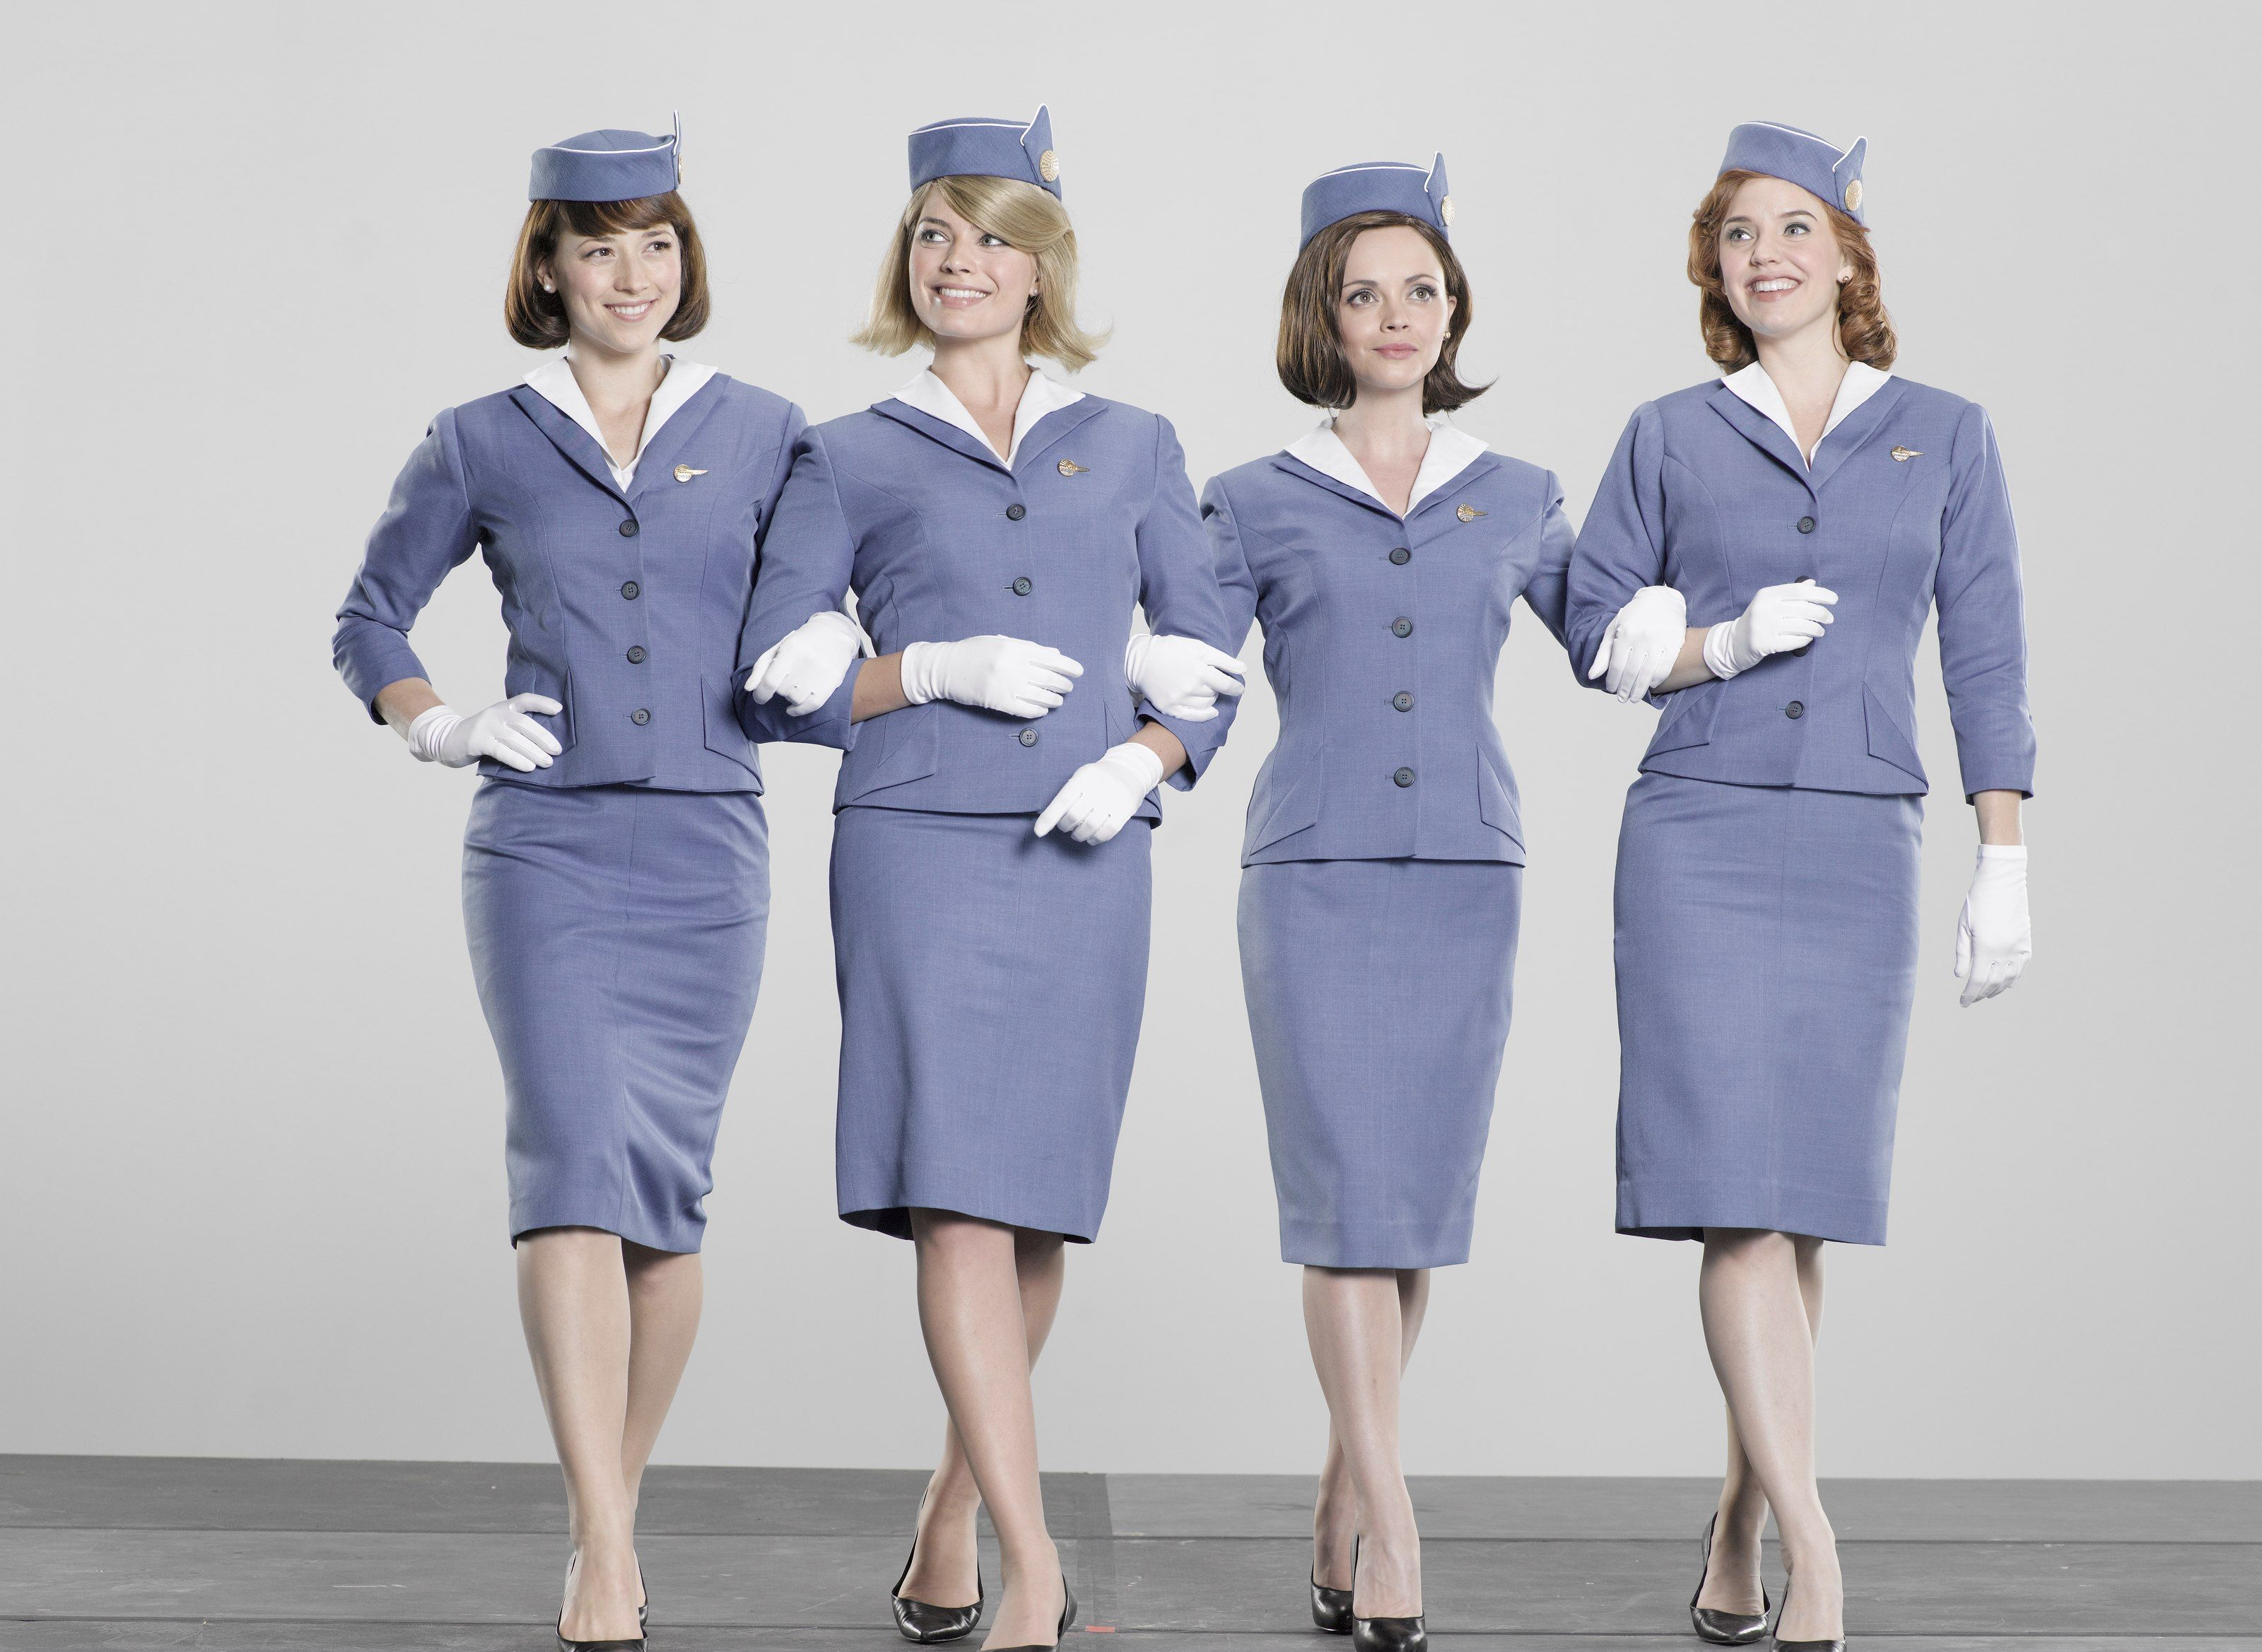 74c97e3da4e Pan-Am: Karine Vanasse, Margot Robbie, Christina Ricci, and Kelli ...